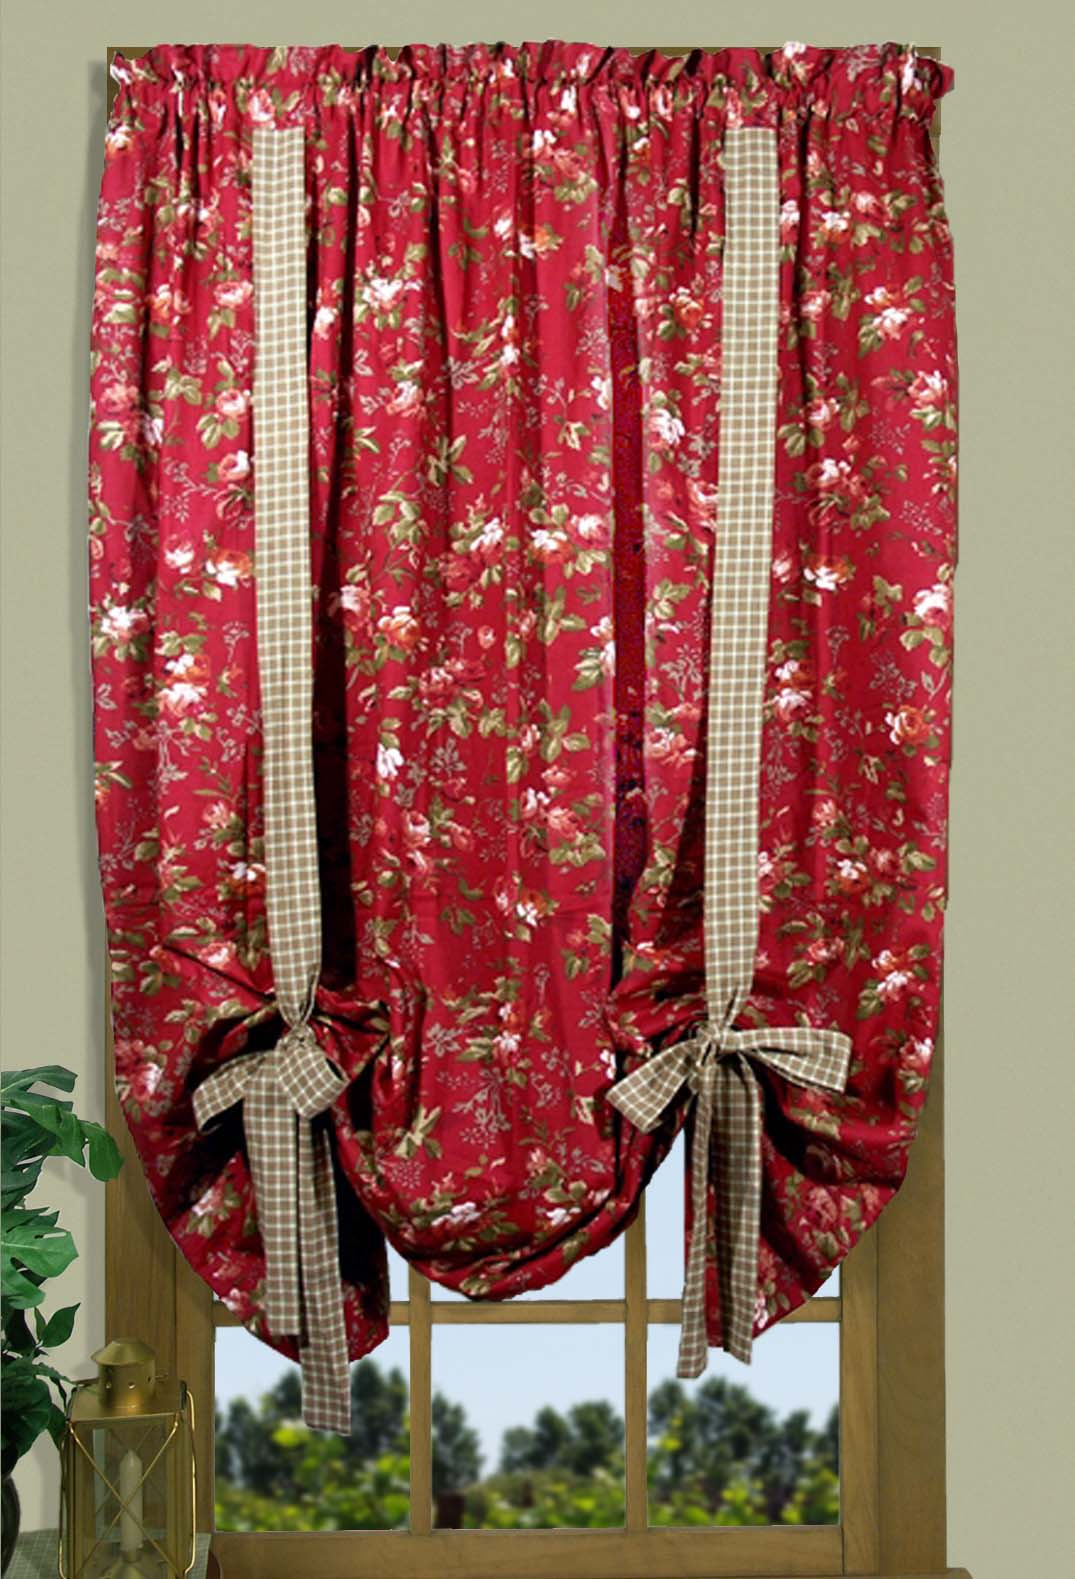 Climbing Roses Valances Amp Curtains Thecurtainshop Com